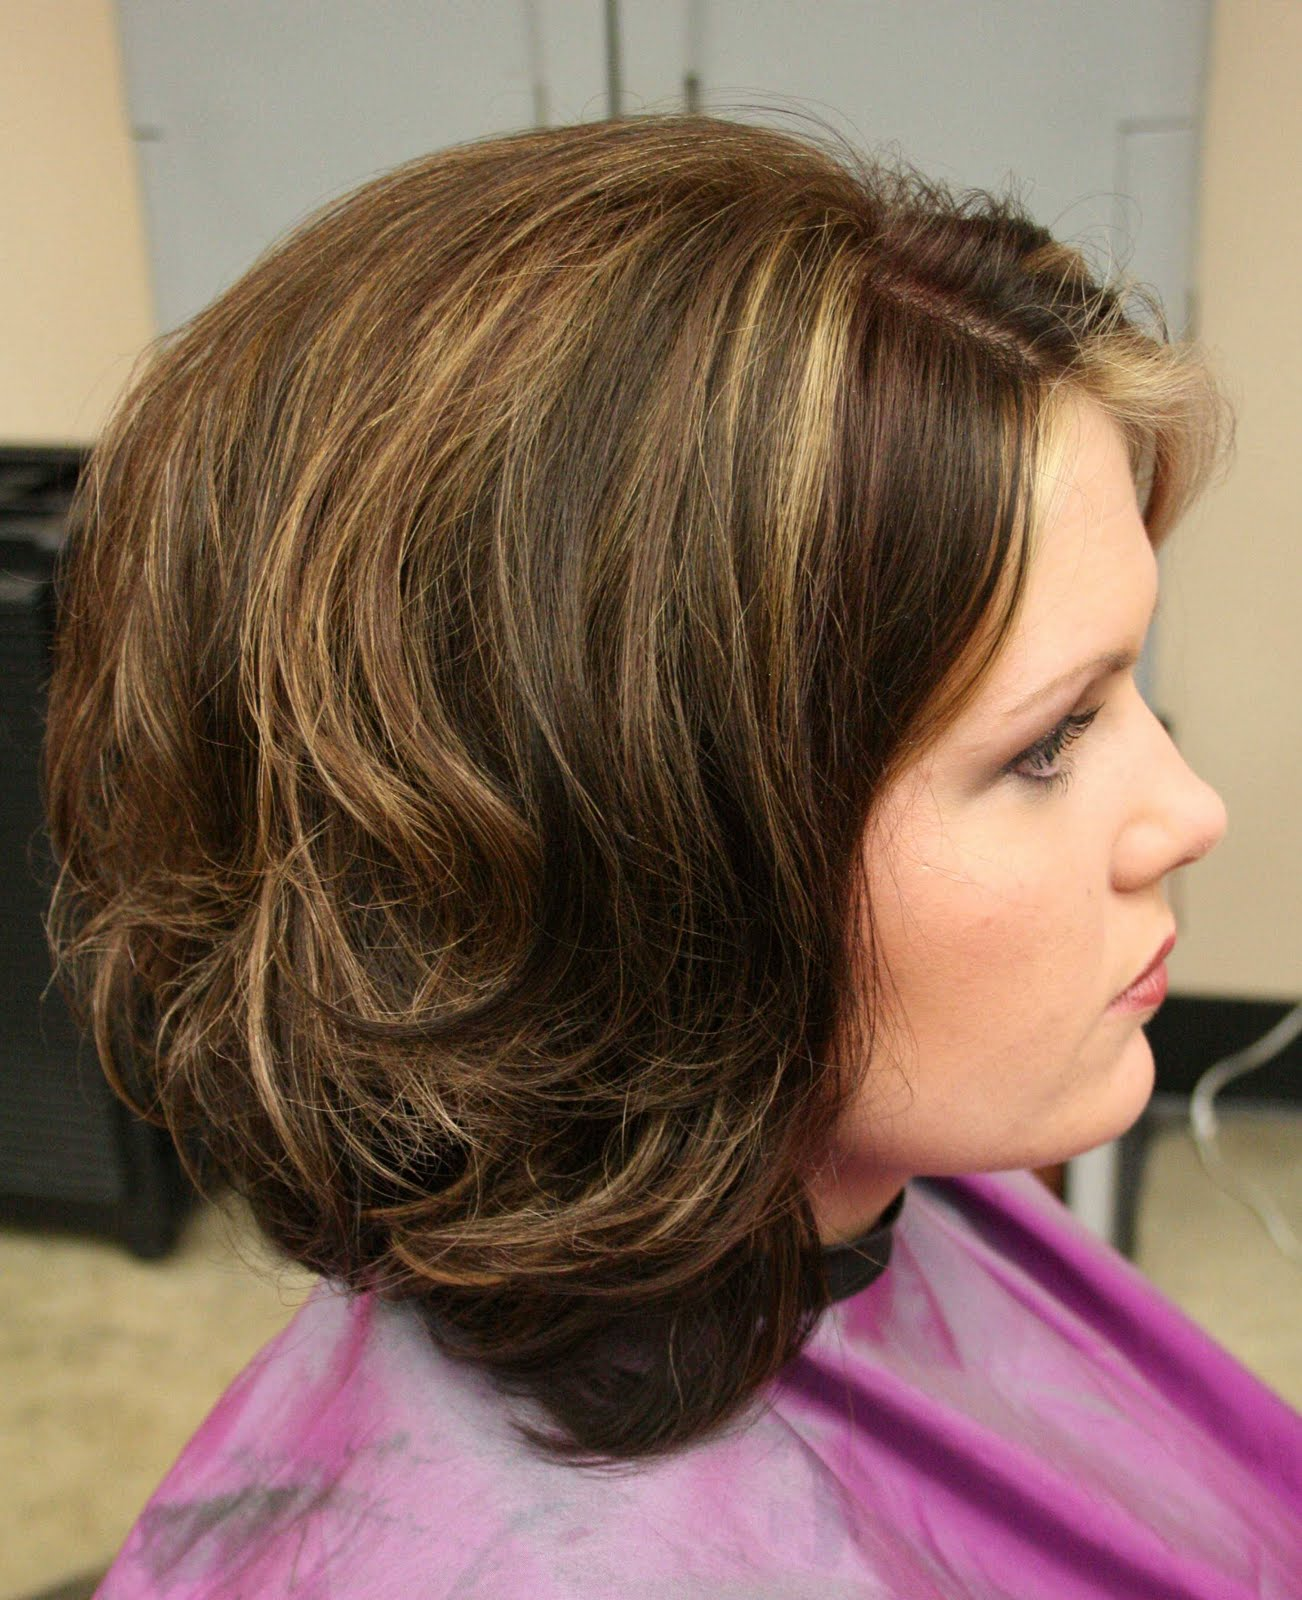 New Haircuts And Hairstyles: Trendy Hairstyles With Modern